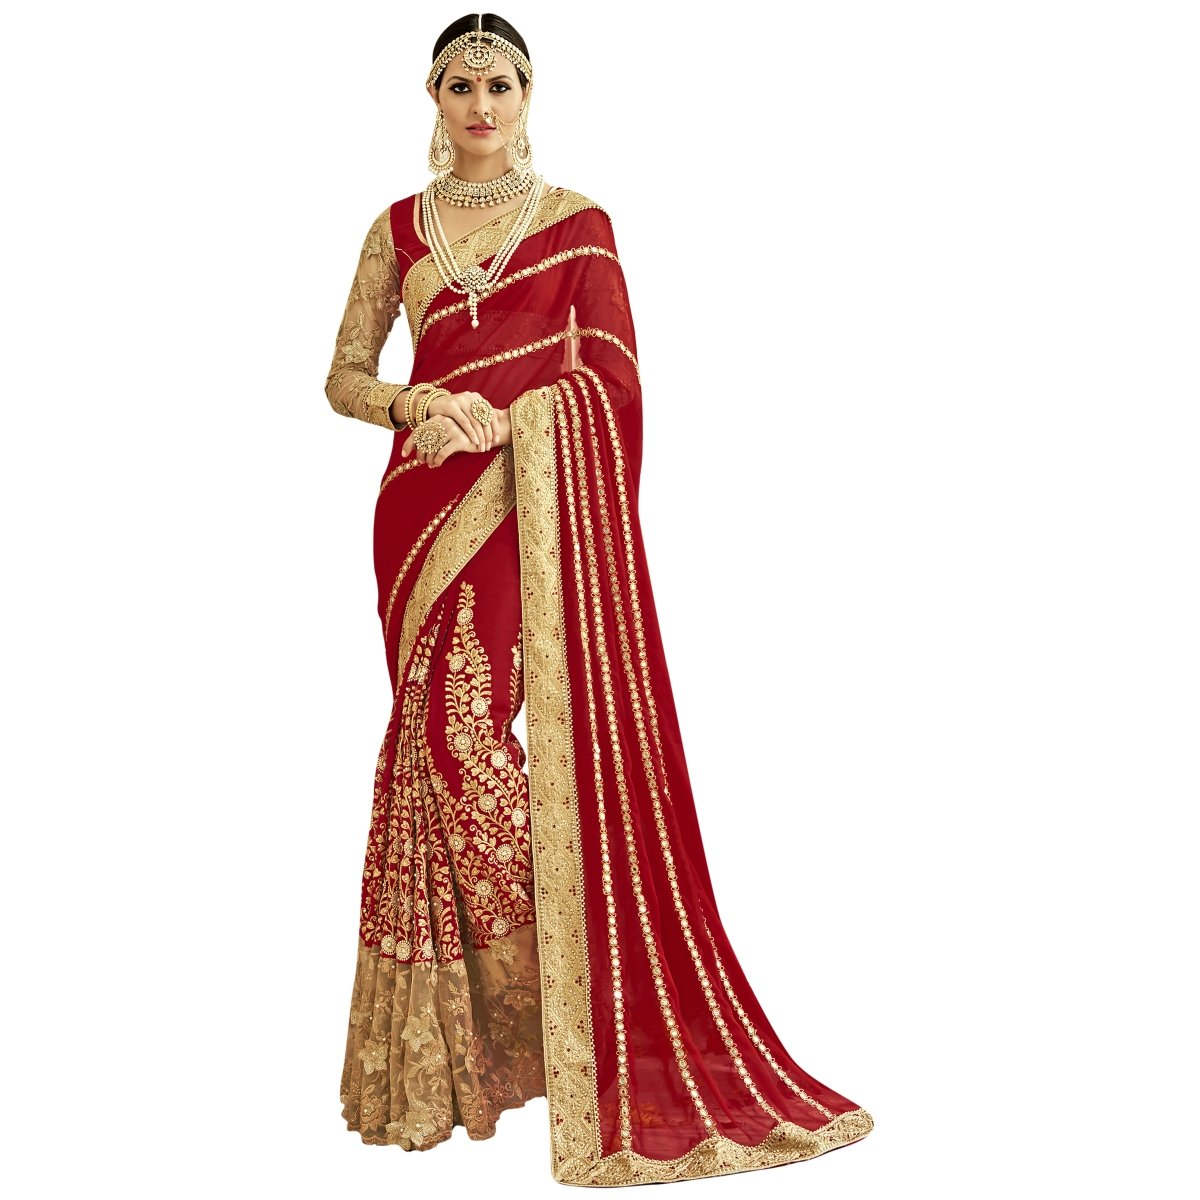 Triveni Women's Indian Red Colored Embroidered Faux Georgette Wedding Saree